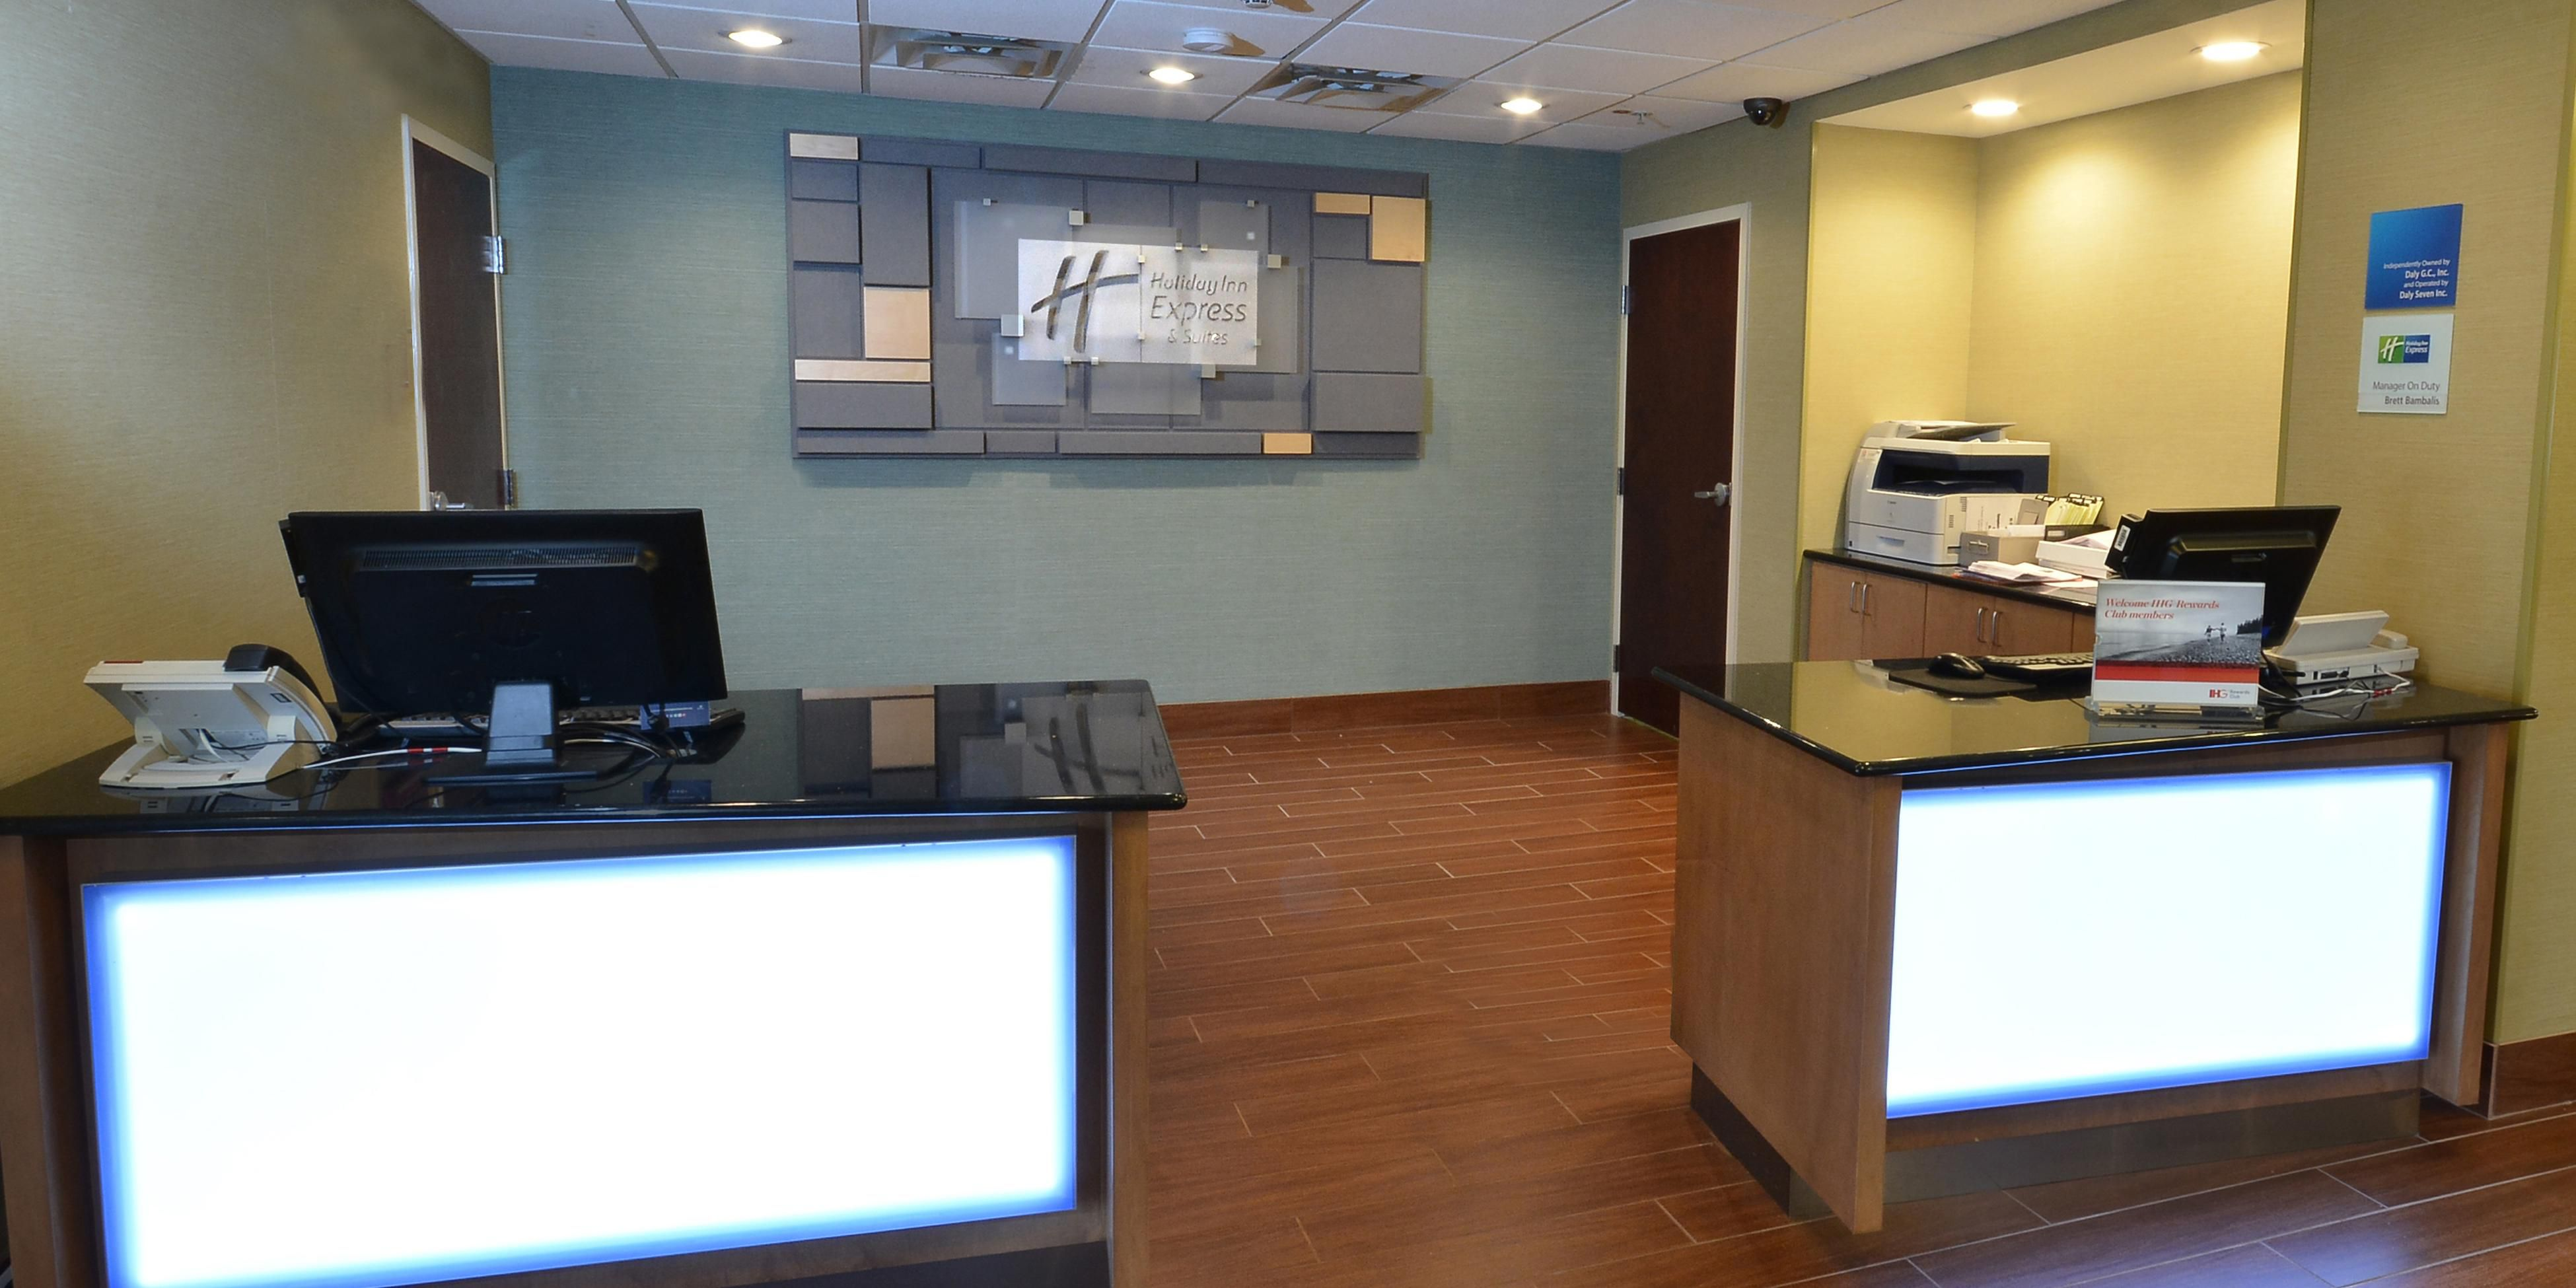 Enjoy A Quick Check In At Our Hotel Near High Point University.